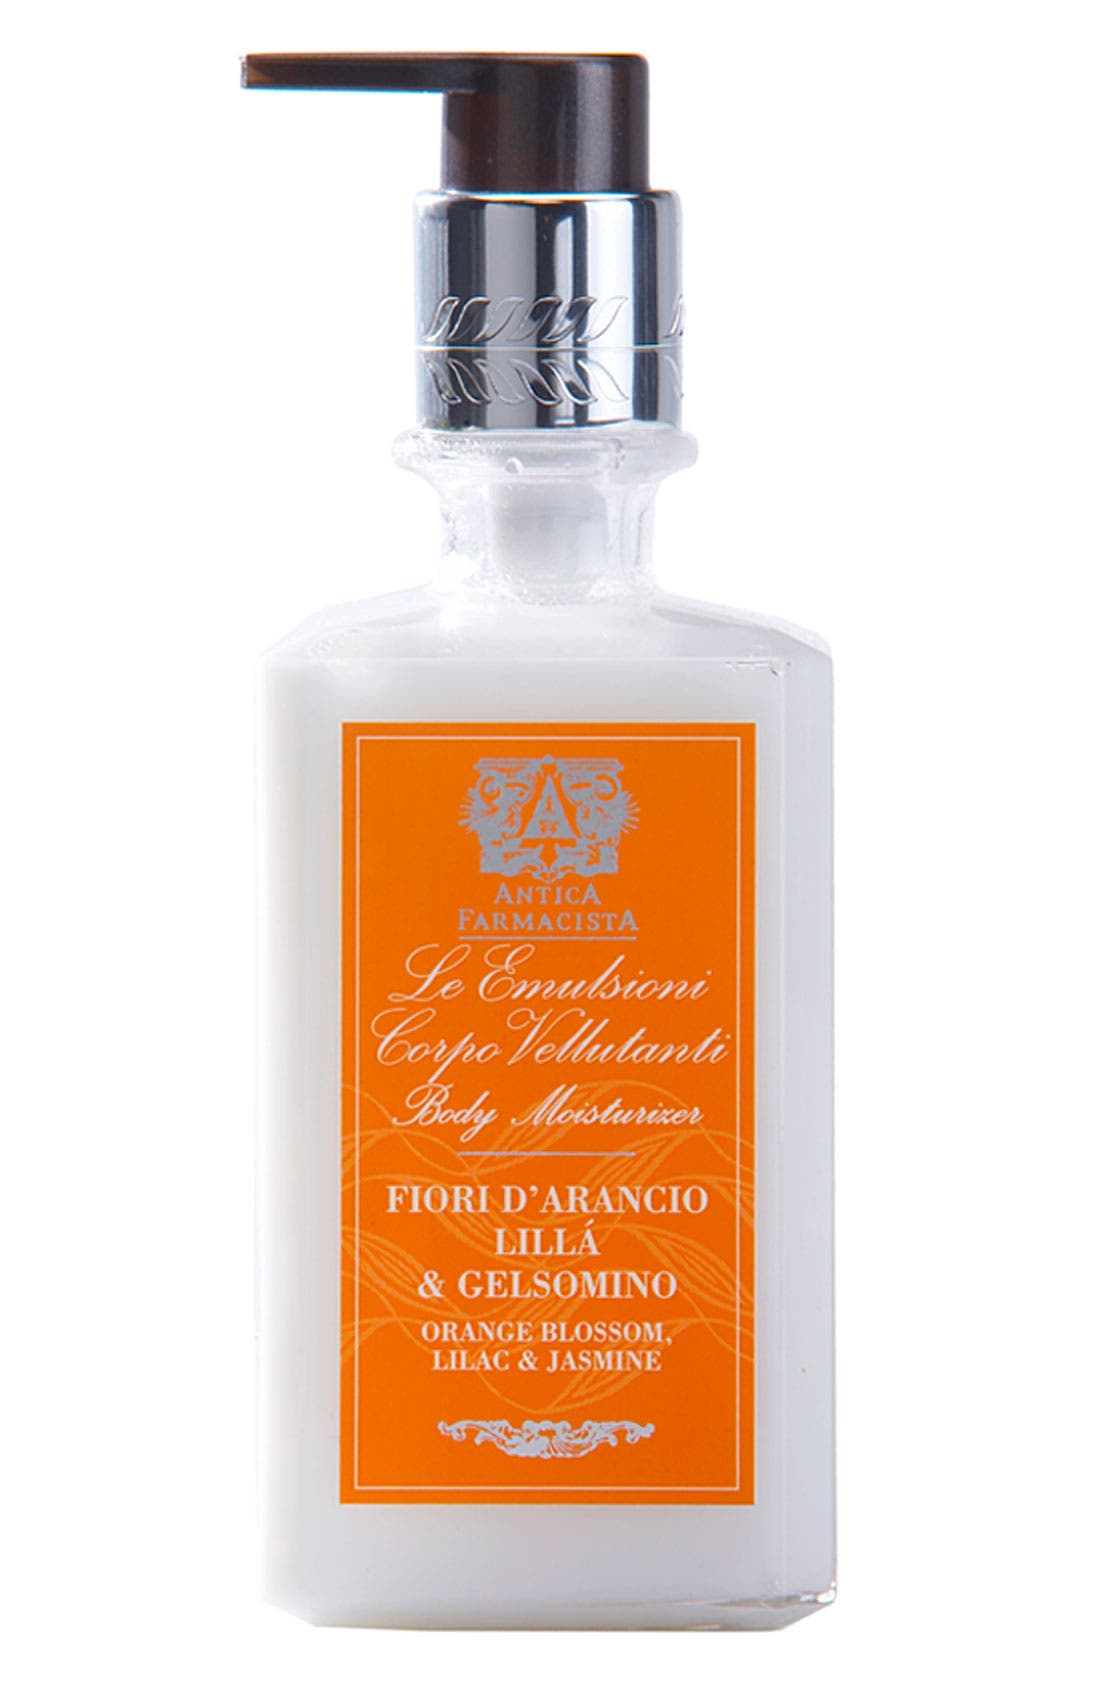 Antica Farmacista 'Orange Blossom, Lilac & Jasmine' Body Moisturizer